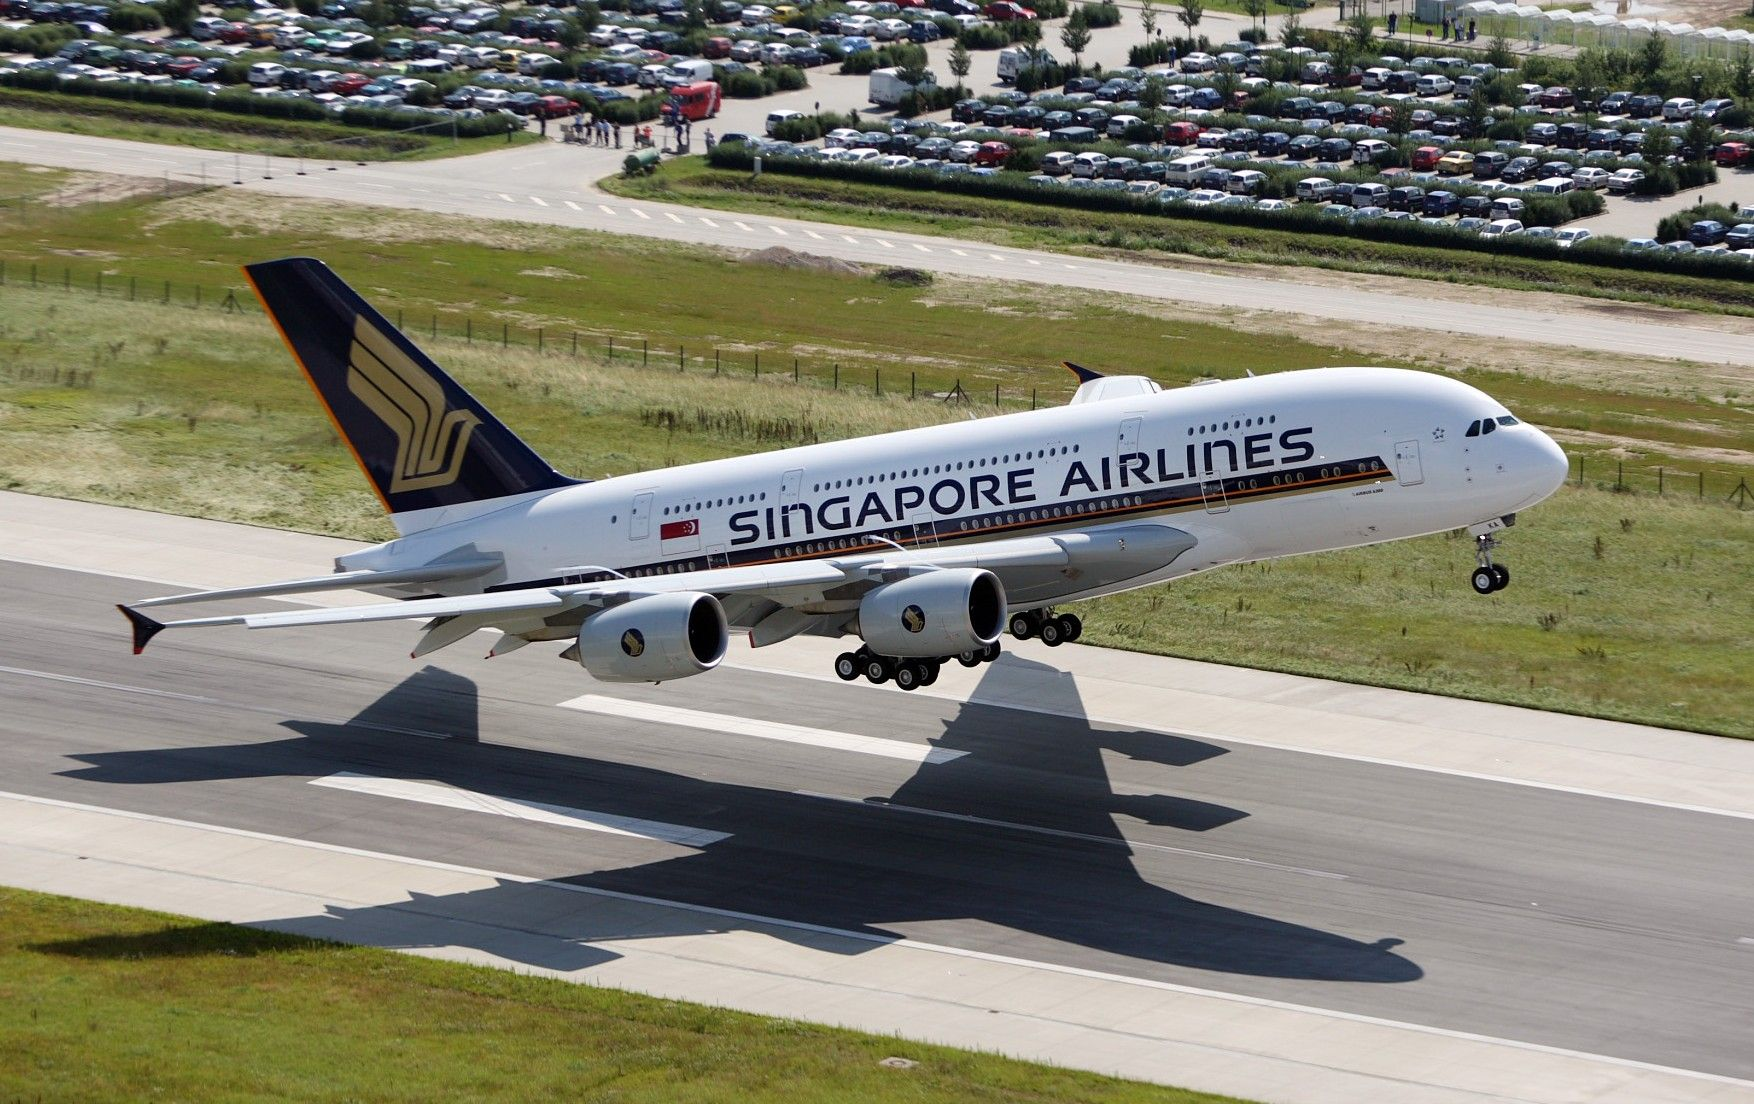 Singapore Airlines A380800 シンガポール航空, 飛行機, 航空